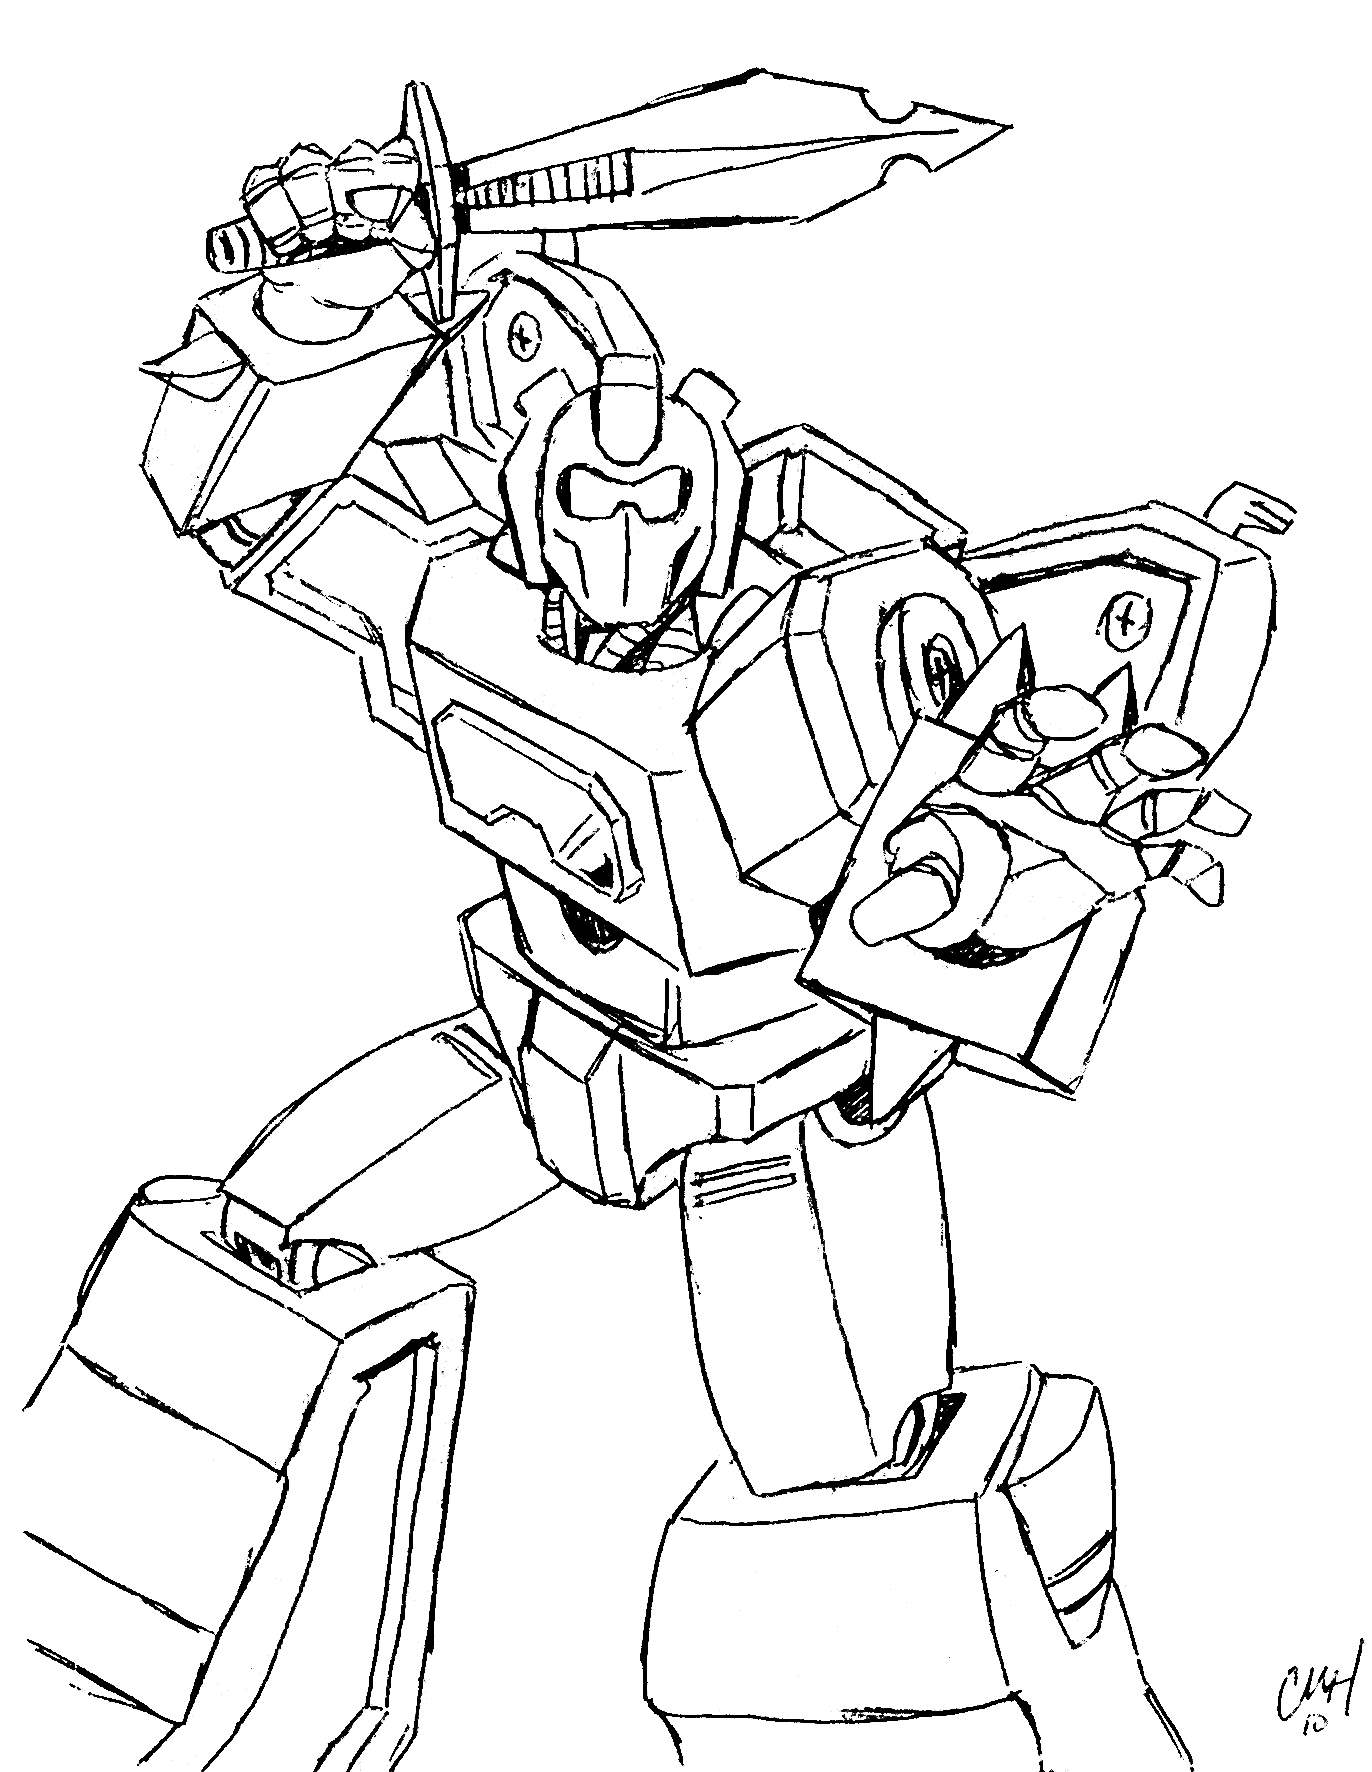 Free Printable Transformers Coloring Pages For Kids | Värityskuvia - Transformers 4 Coloring Pages Free Printable